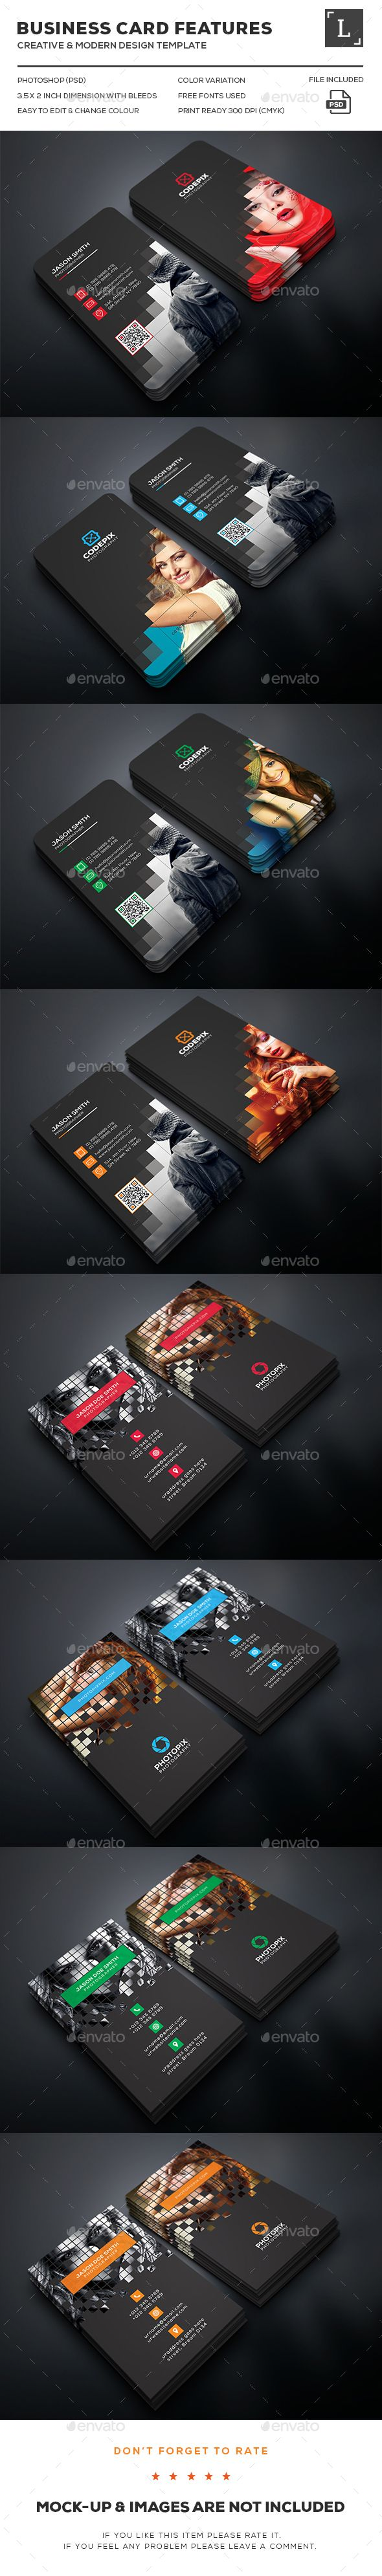 Photography Business Card Bundle Templates PSD. Download here: http://graphicriver.net/item/photography-business-card-bundle/16295695?ref=ksioks